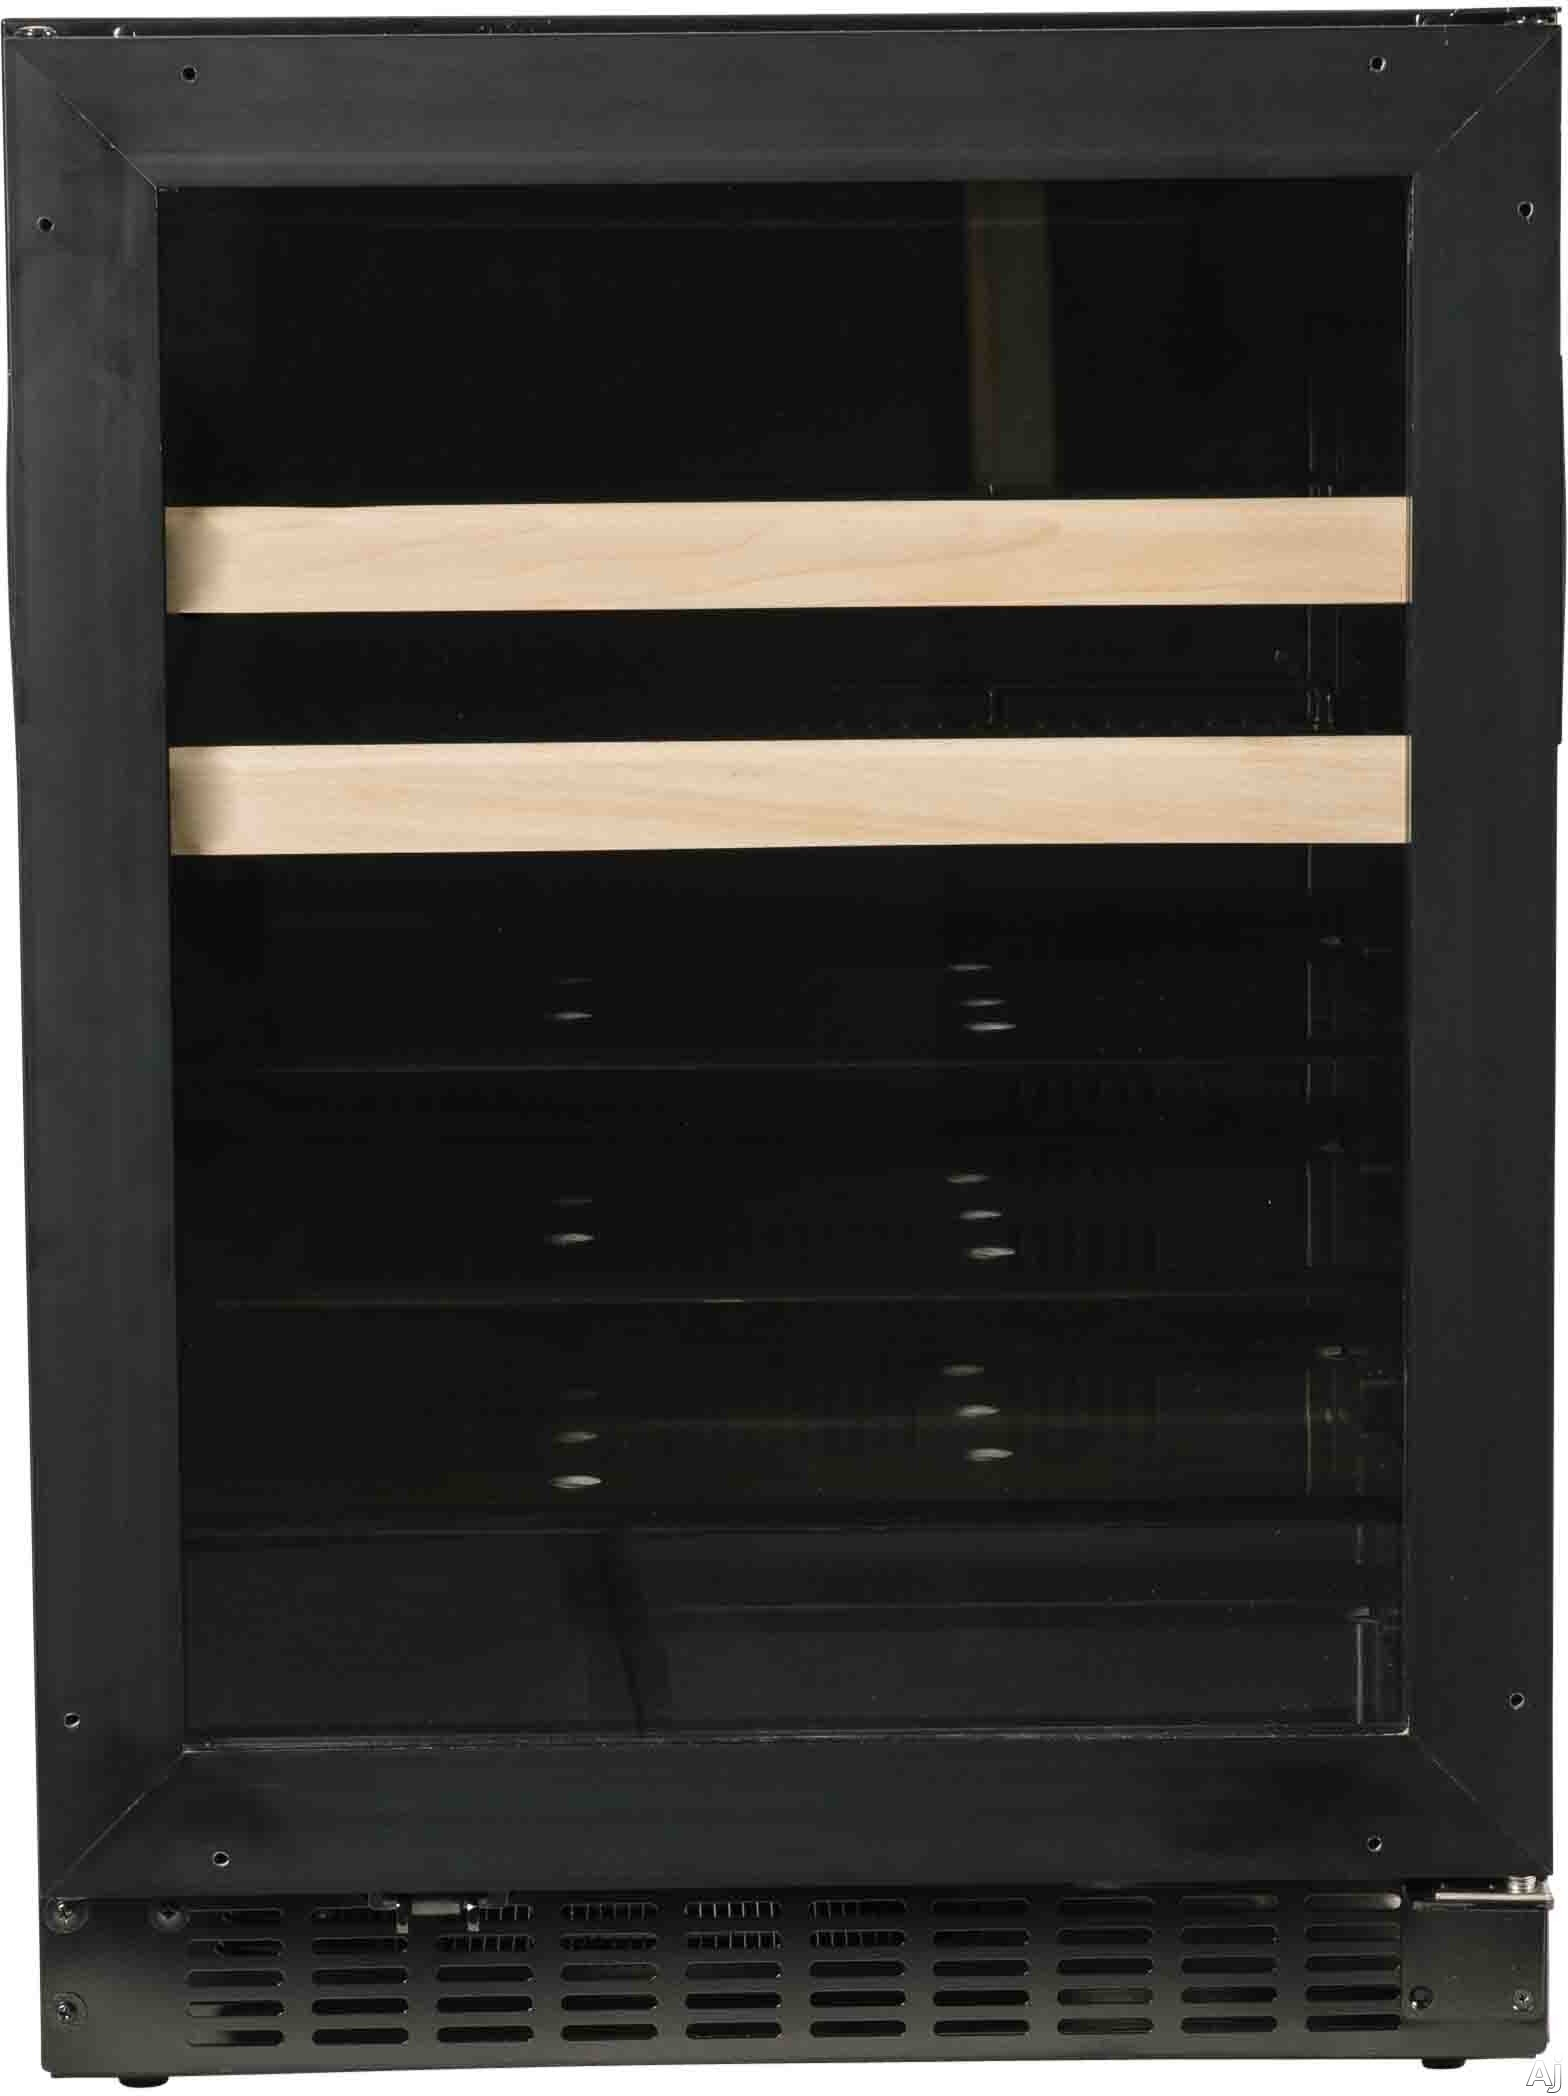 Azure A124BEVO 24 Inch Beverage Center with Blue LED Lighting, Glass Shelving, Wine Racks, Field Reversible Door, Digital Display Controls, Auto Defrost, A.D.A. Compliant and 3 cu. ft. Capacity: Panel Ready-Glass